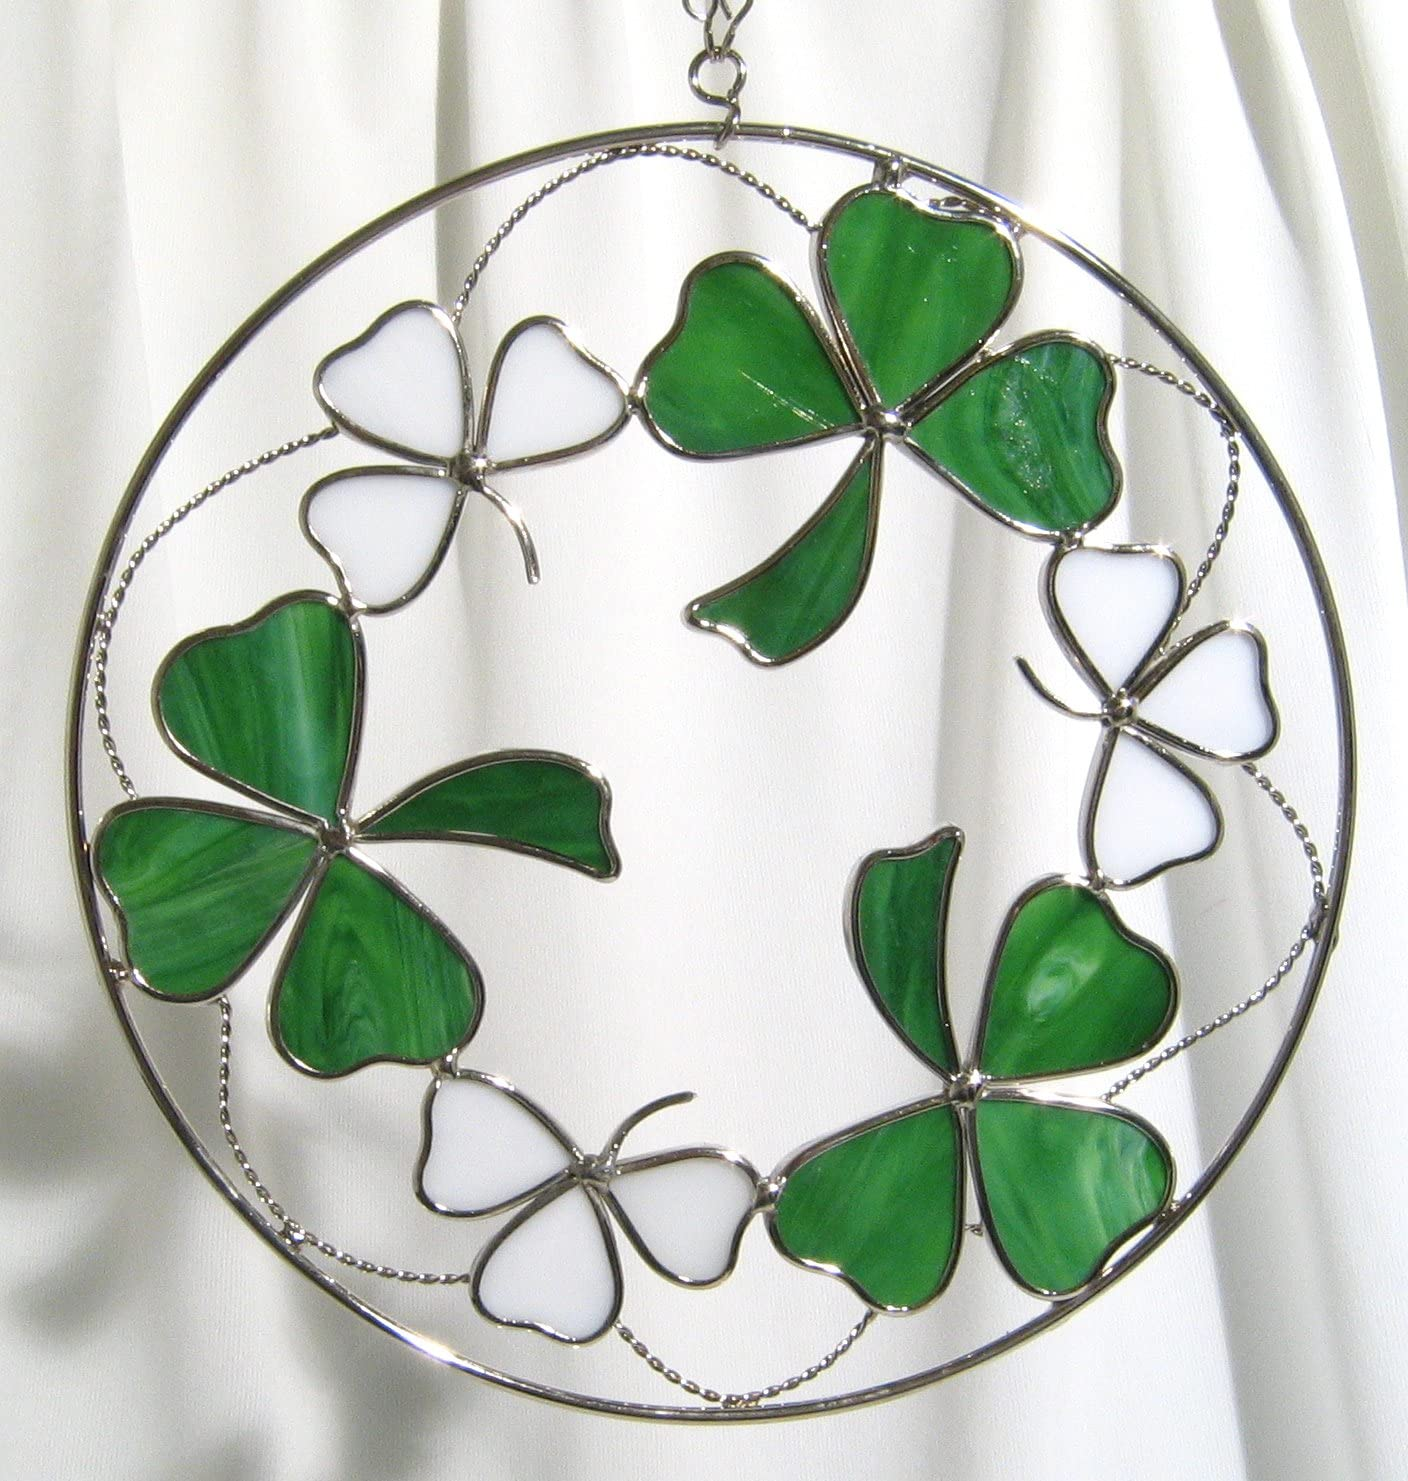 Stained Glass Shamrocks – 8 Inches Round